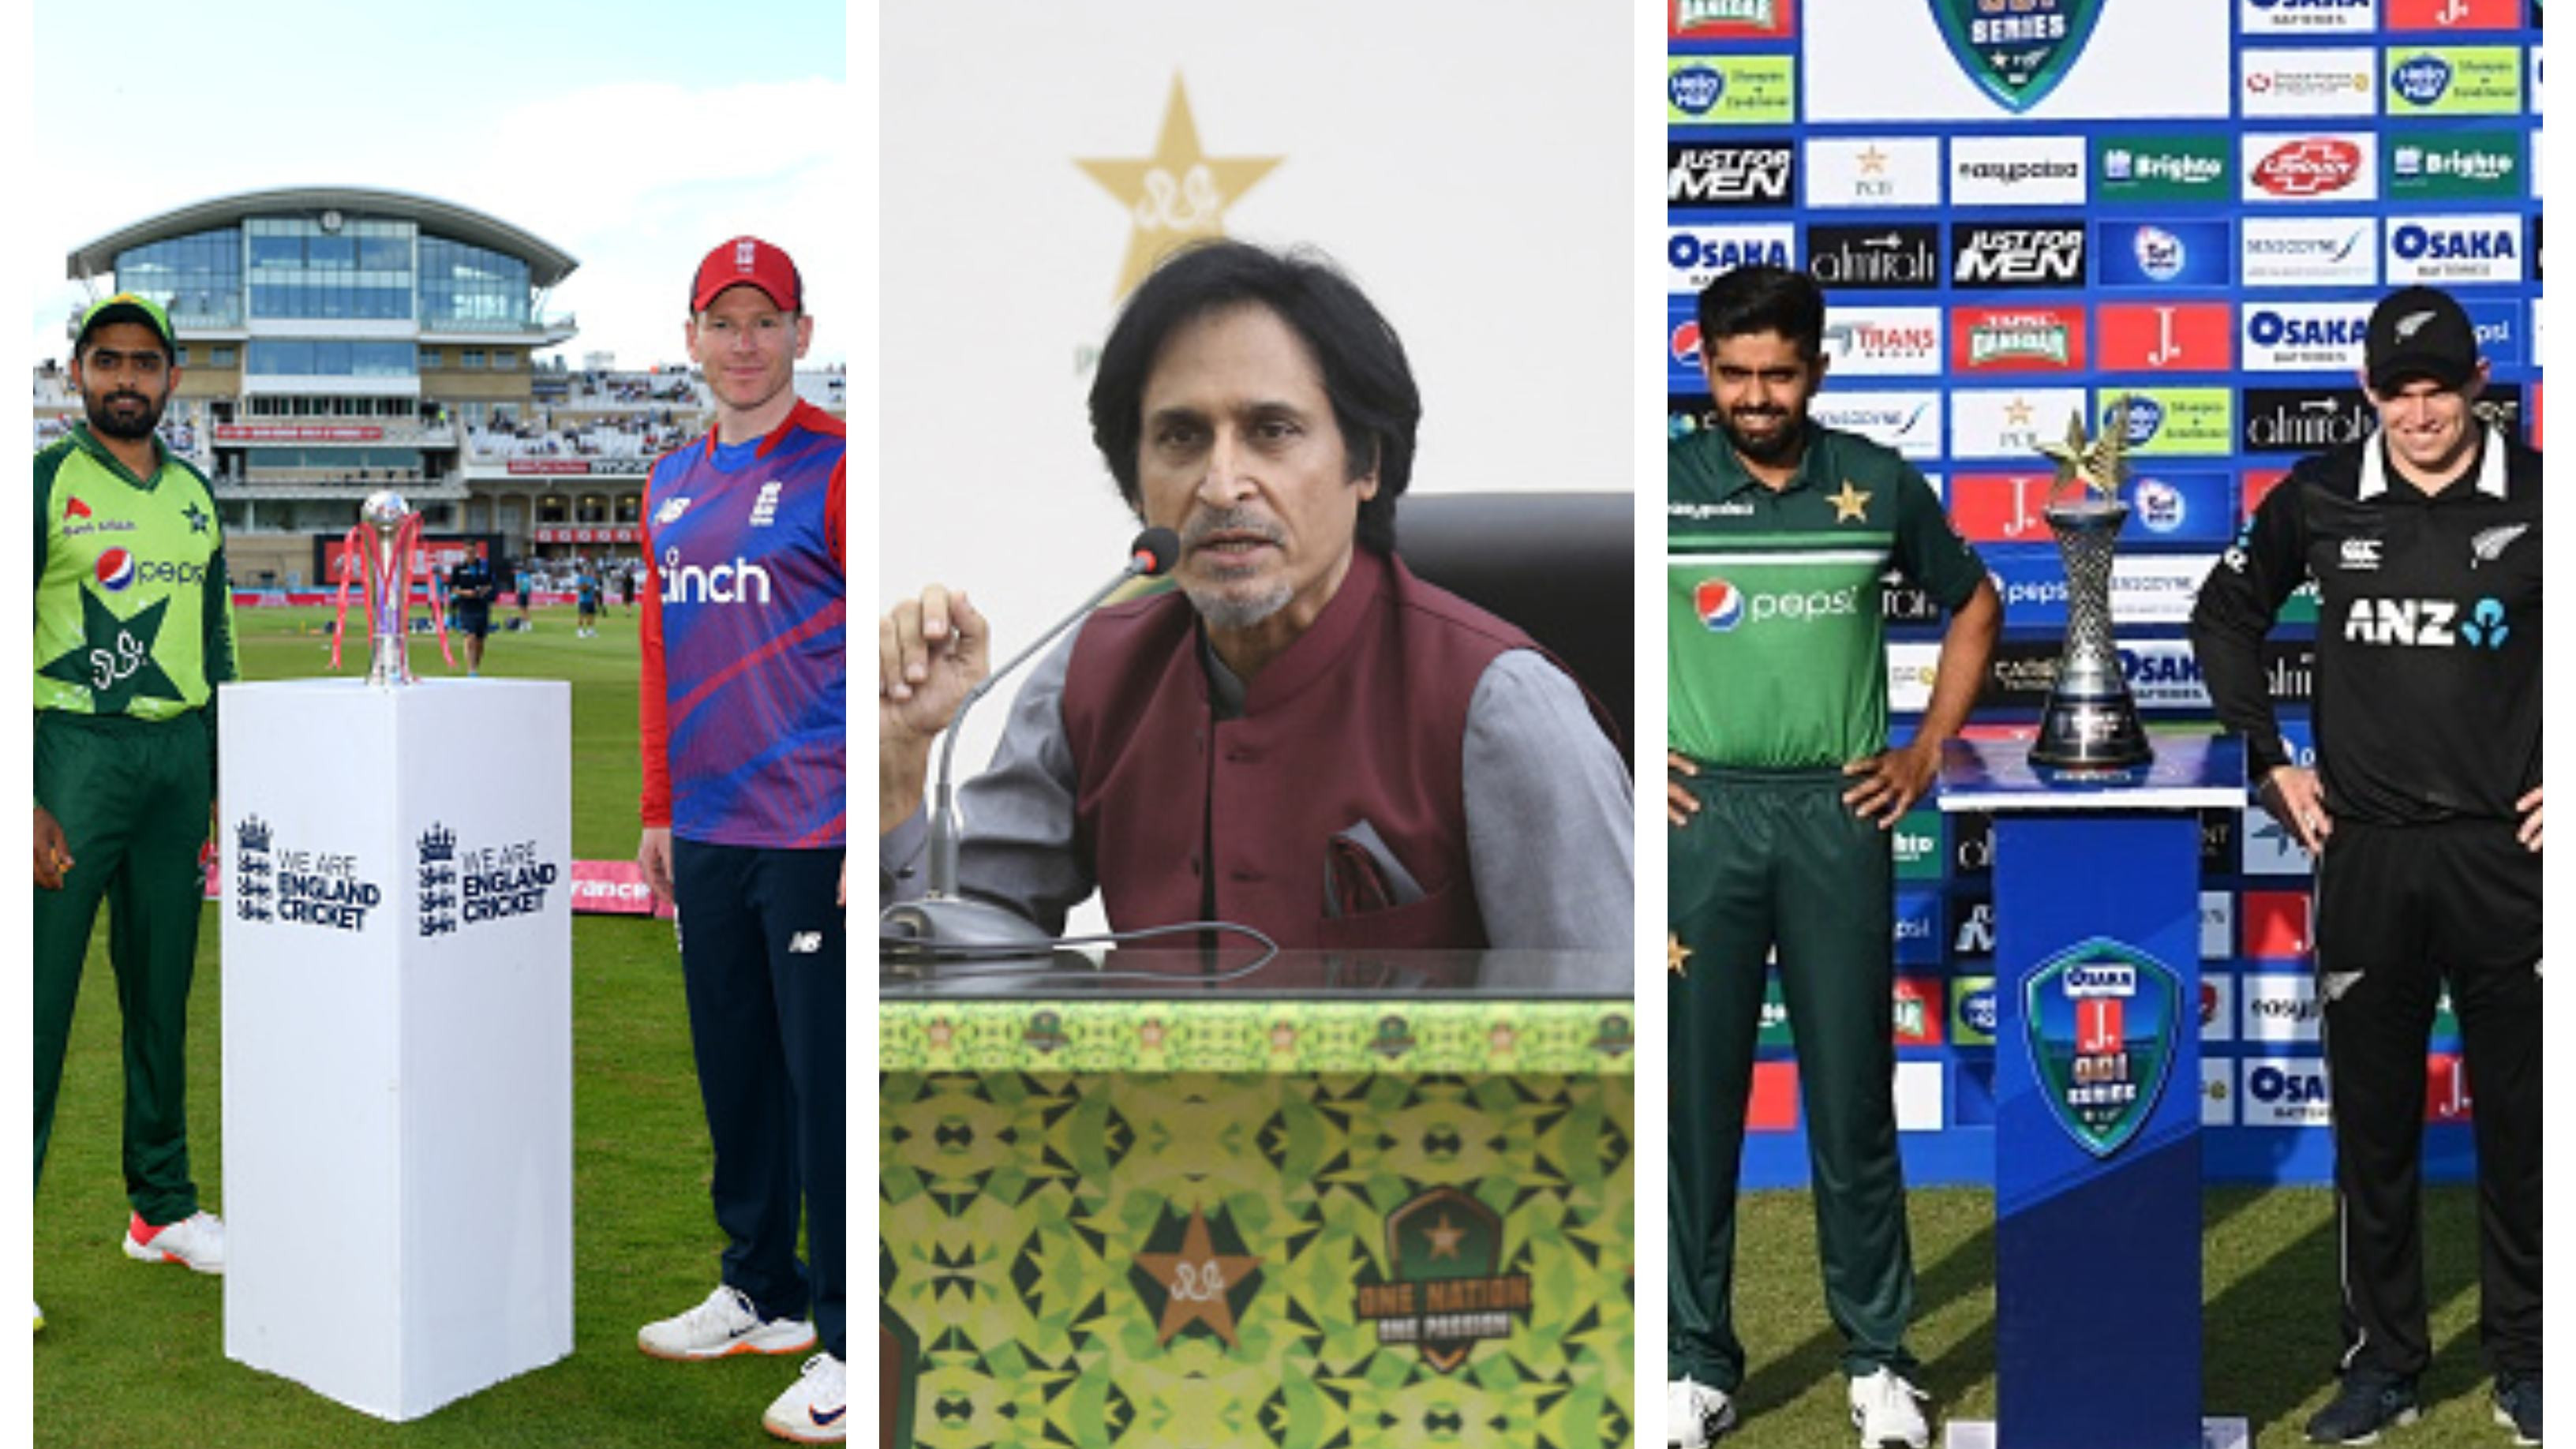 WATCH: Ramiz Raja asks Pakistan team to take revenge from New Zealand, England by beating them at T20 World Cup